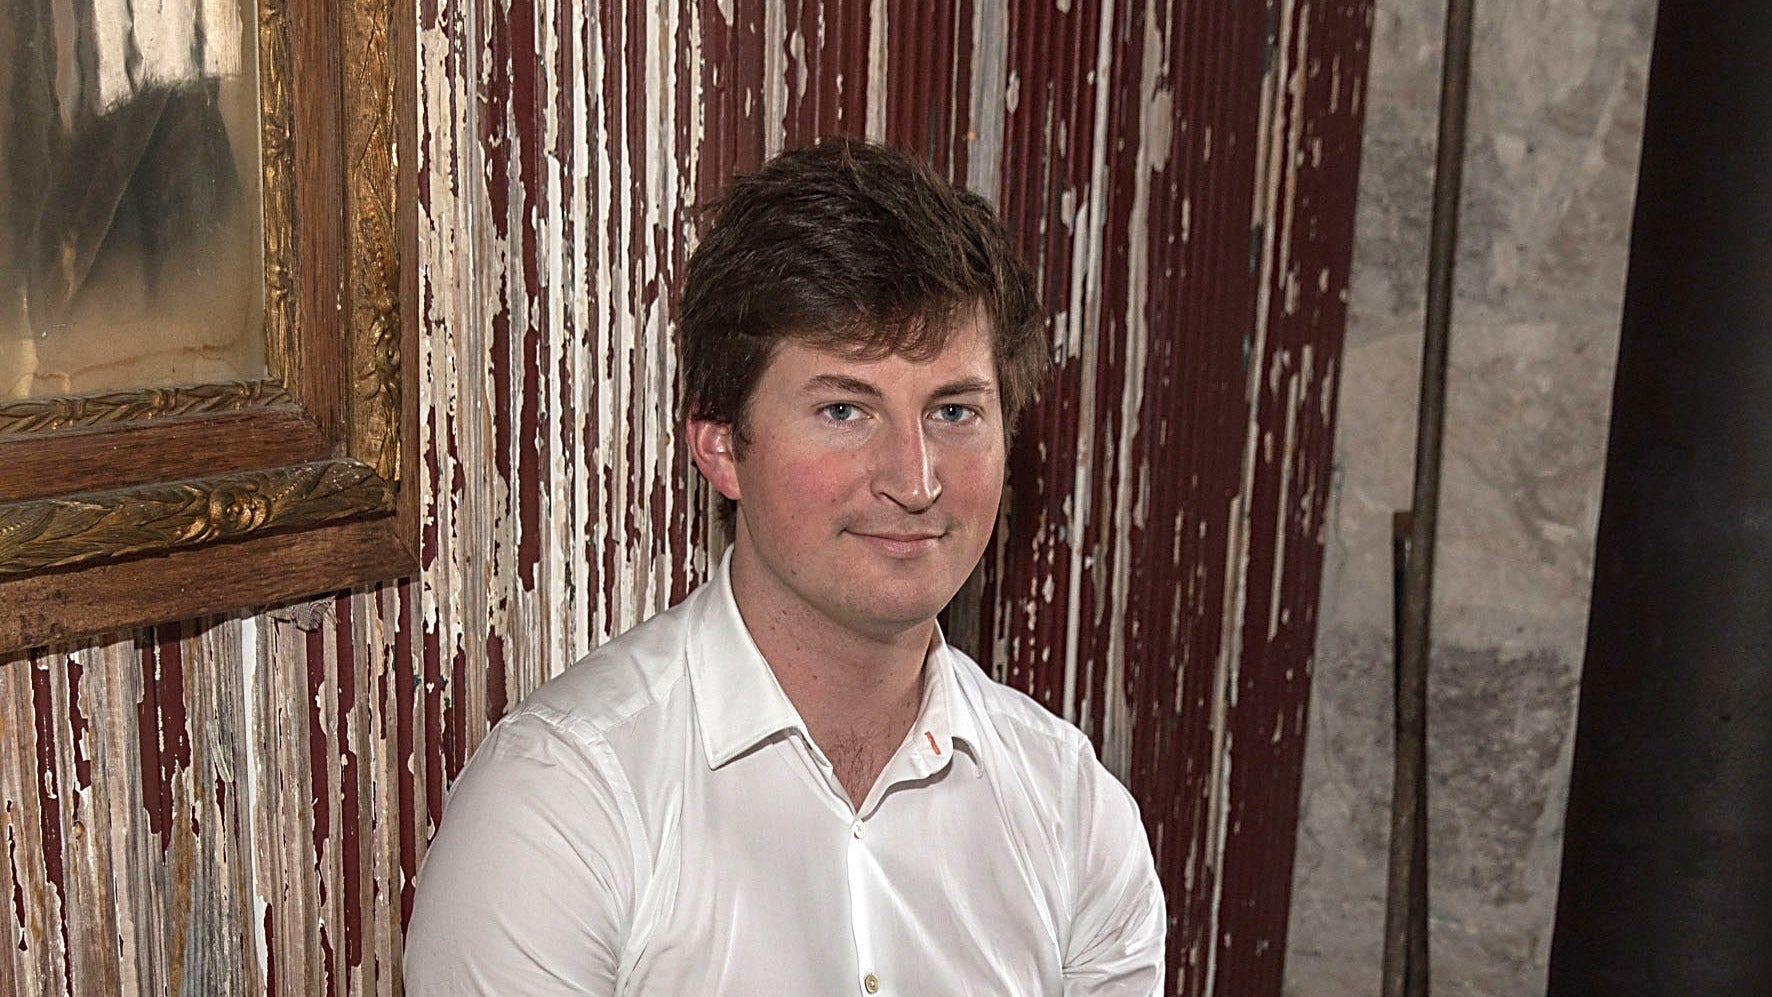 Soylent Founder Steps Down As CEO: 'If You Love Something, Set It Free'